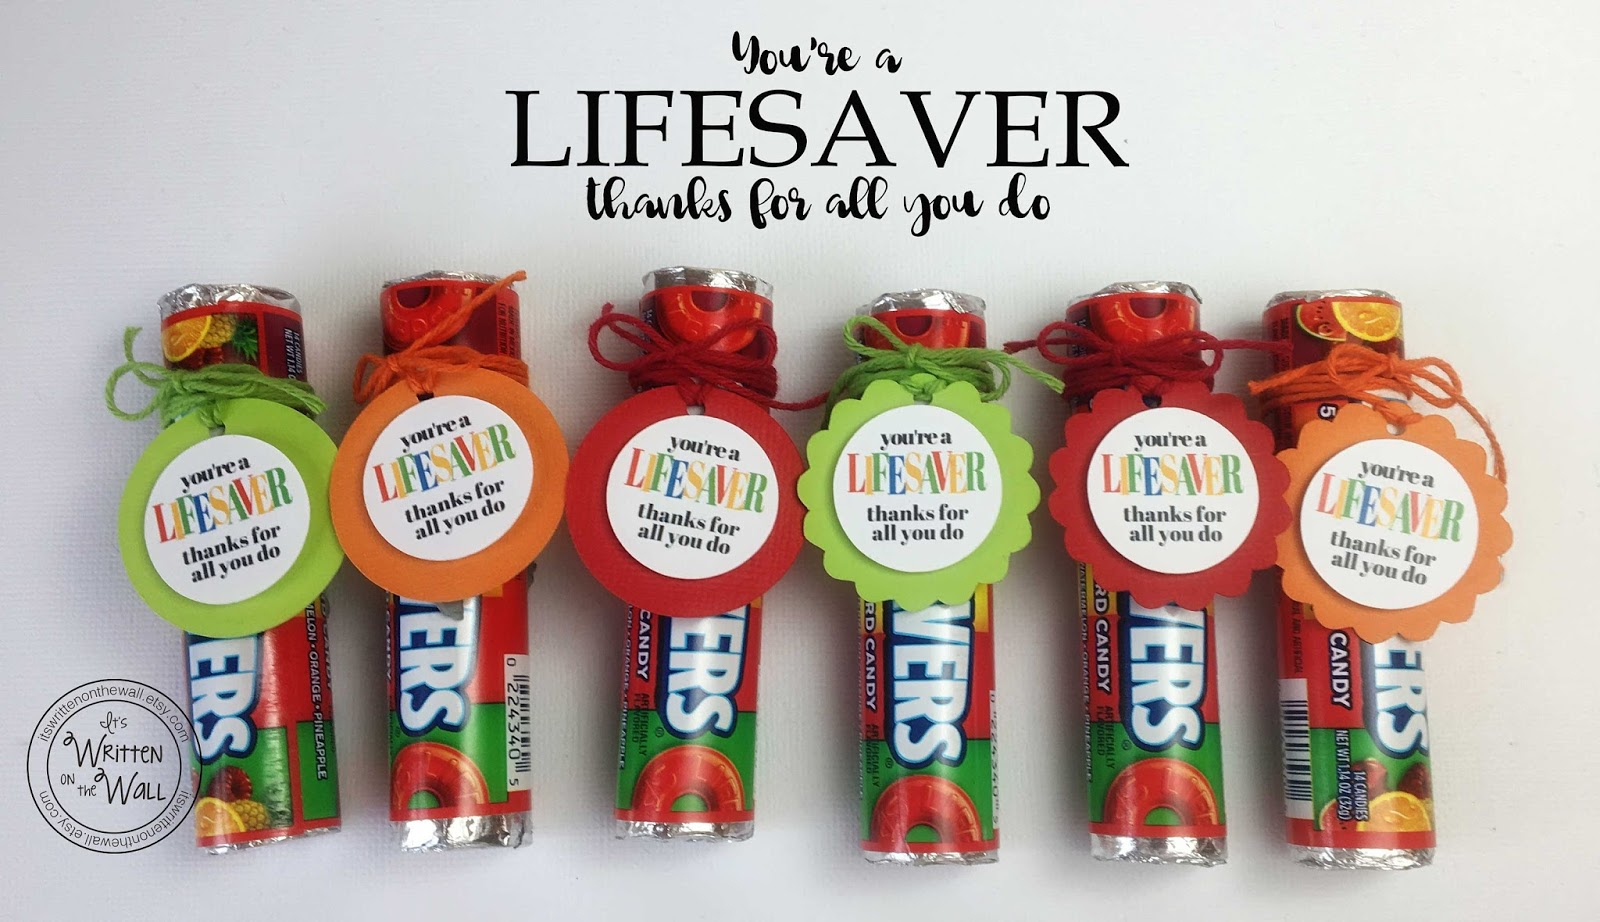 It's Written On The Wall: You're A Lifesaver—Thanks For All You Do - Free Printable Lifesaver Tags